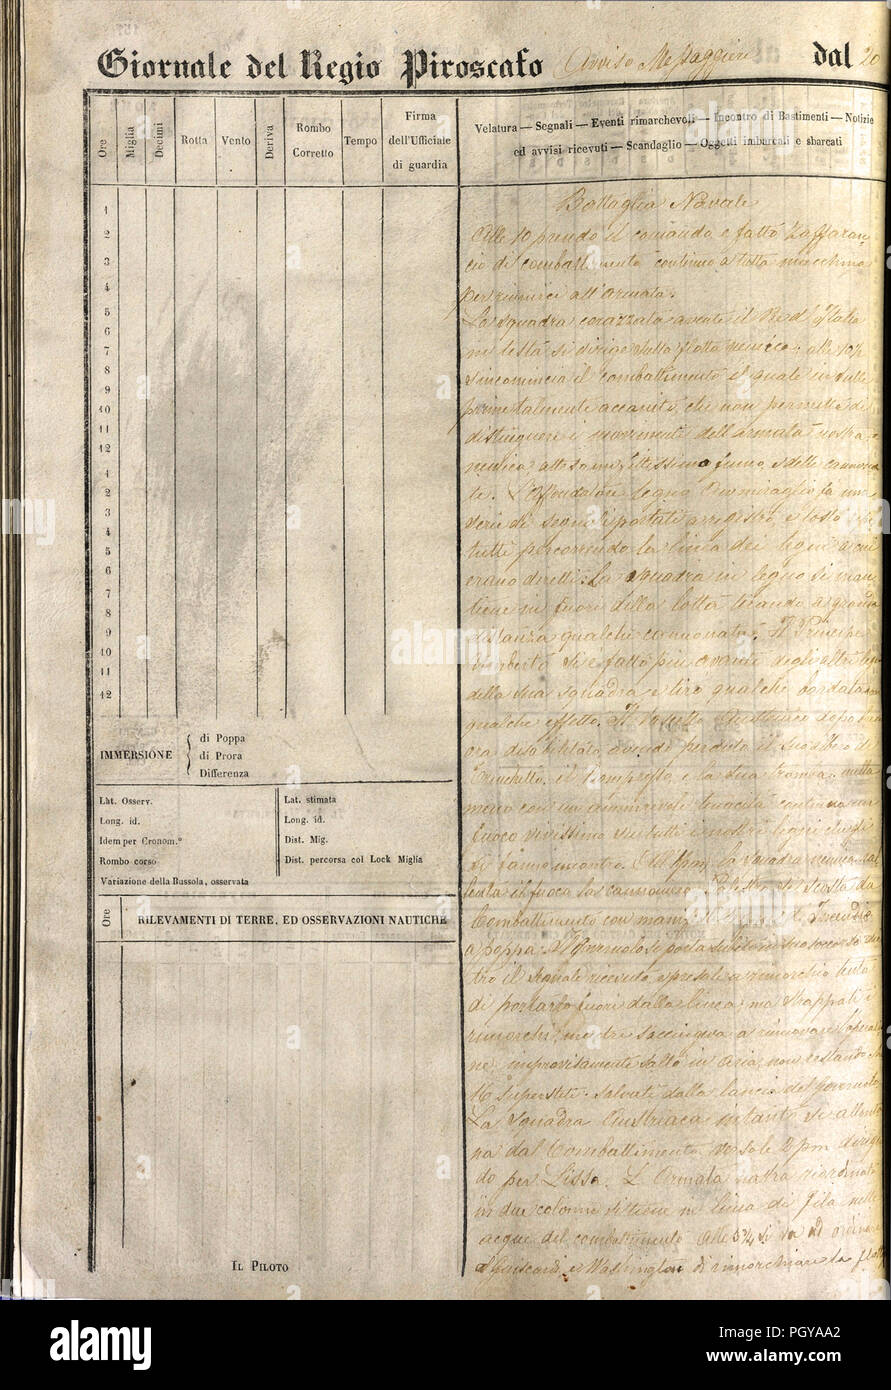 Logbook of the Regia Nave Mesaggero A page 158 shows the description of the Battle of Lissa - Stock Image